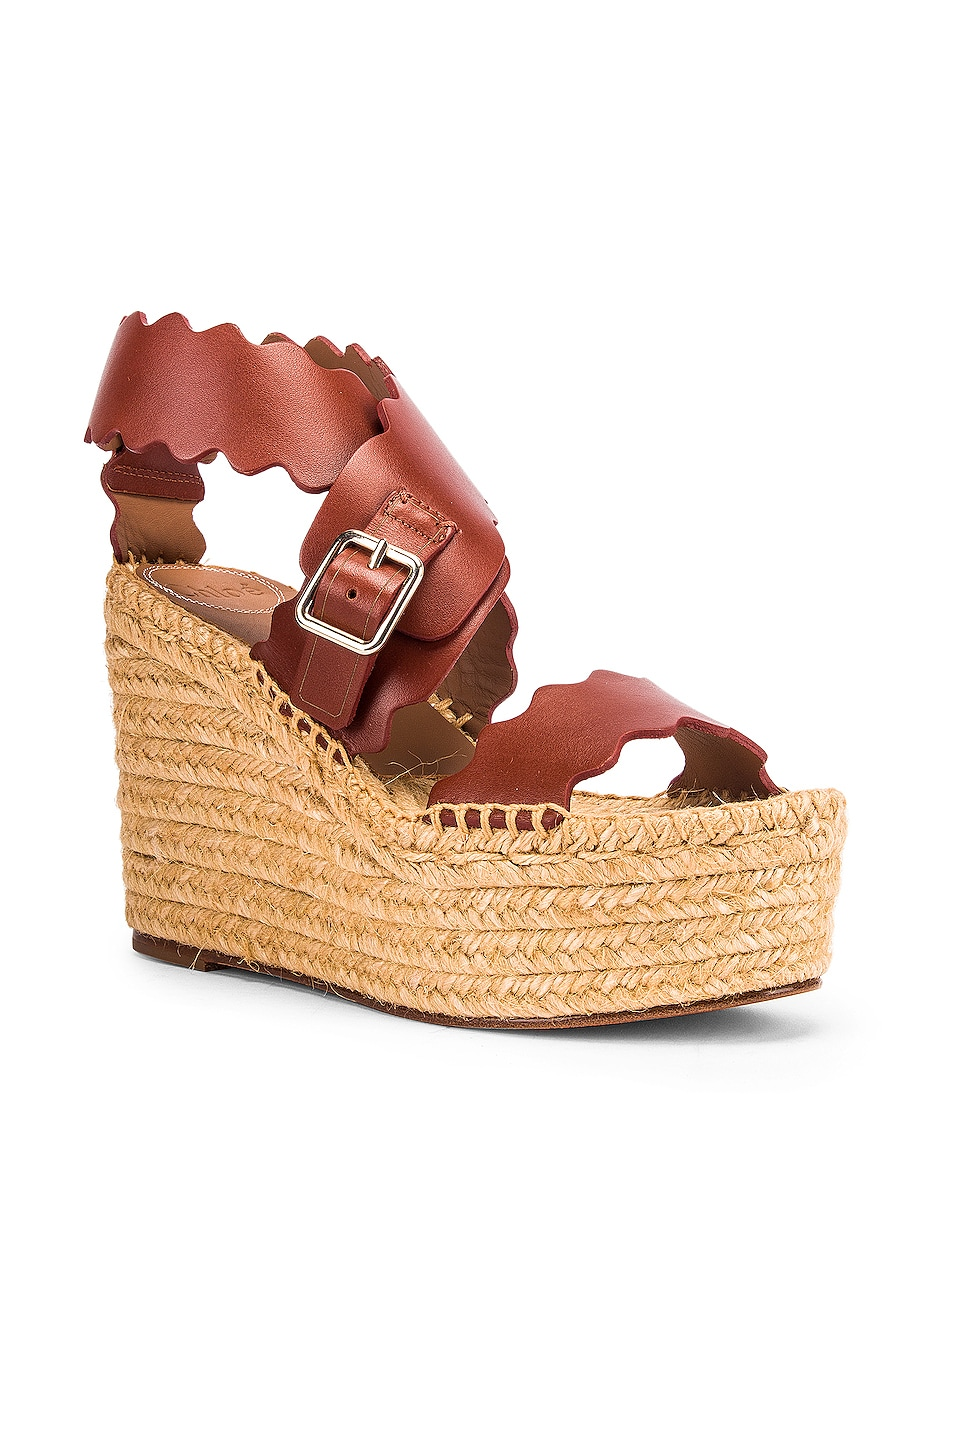 Image 2 of Chloe Leather Wedges in Sepia Brown